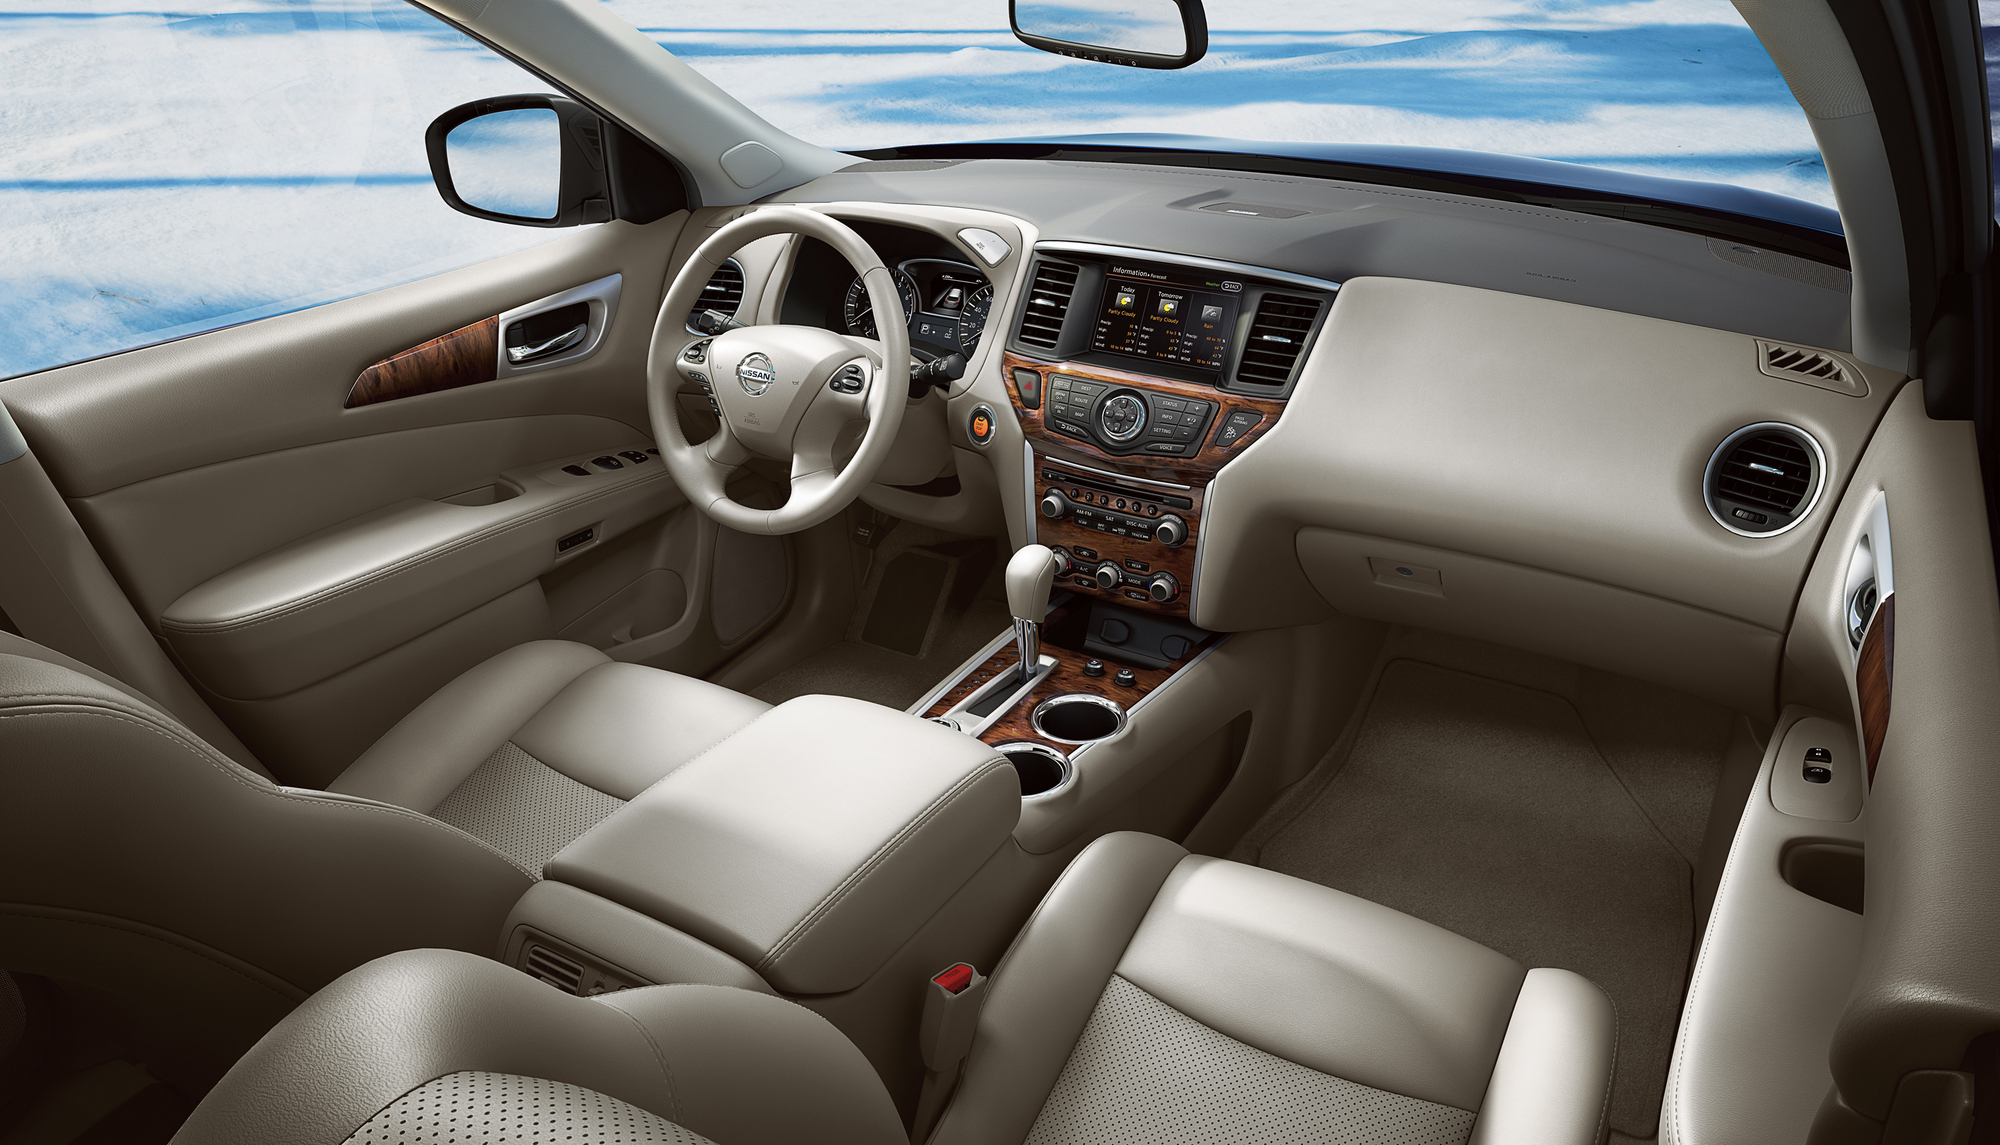 New Nissan Pathfinder Brings Better Aerodynamics And Fuel Economy To